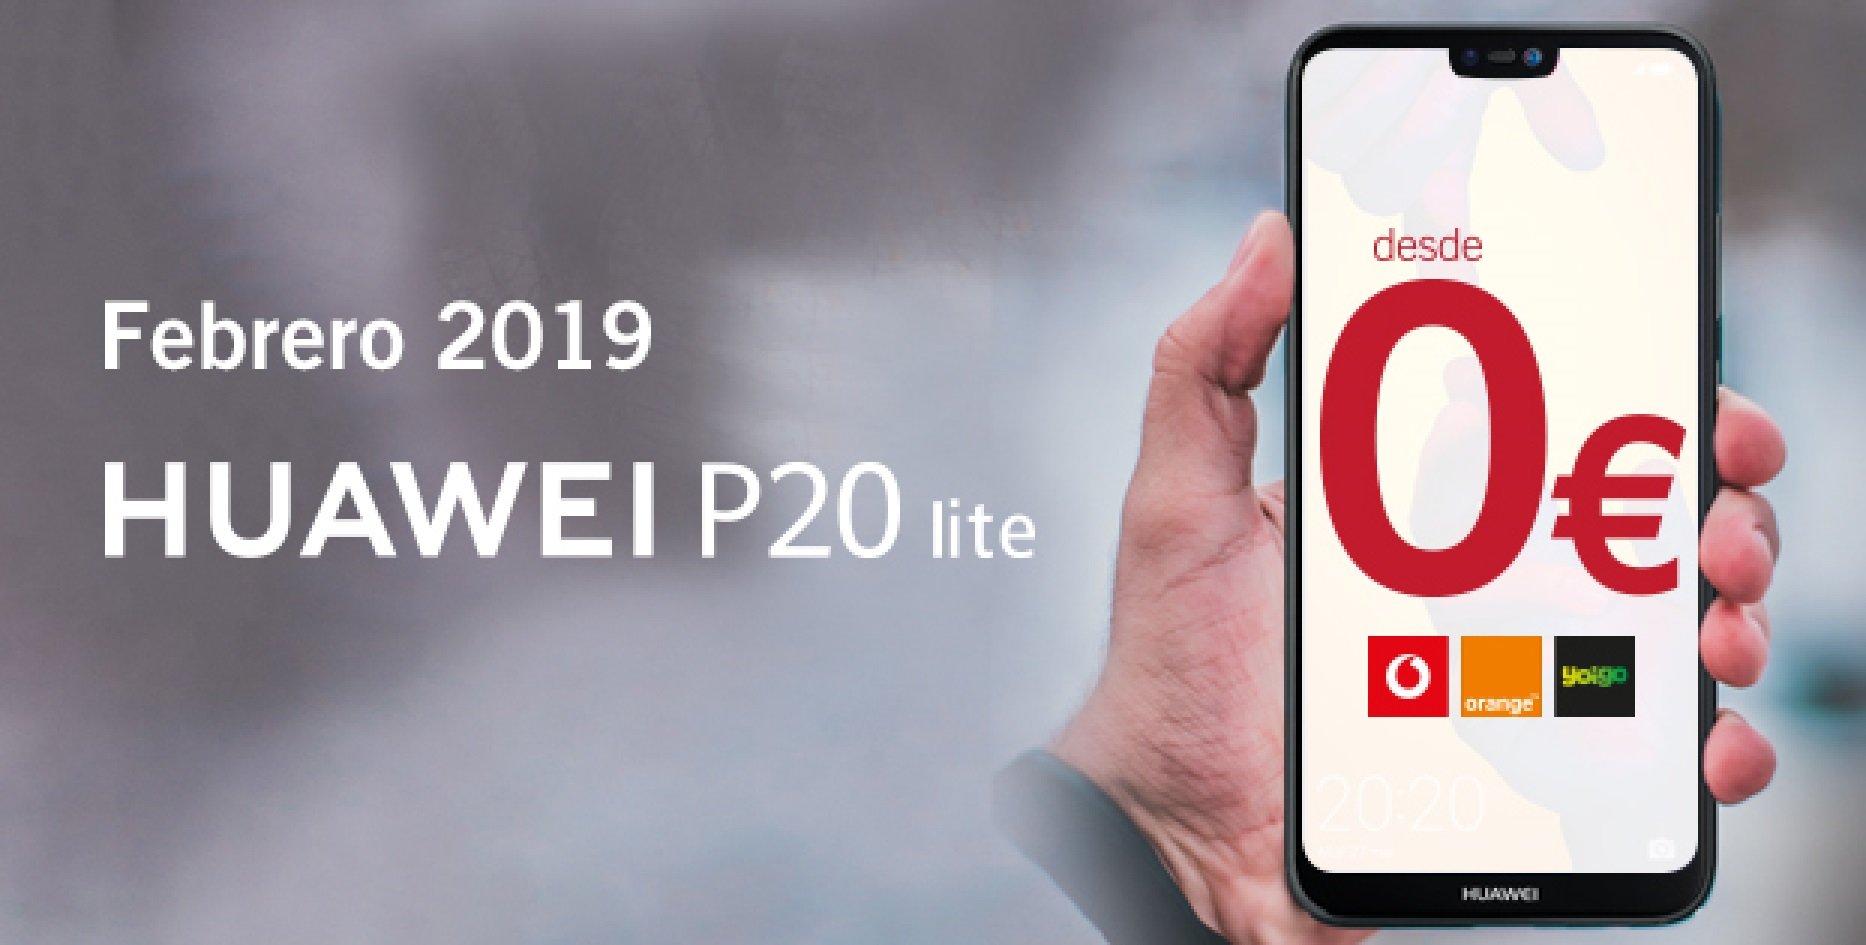 Phone House Moviles Libres Catalogo Todas Las Ofertas Que Podrás Encontrar En Febrero 2019 En Phone